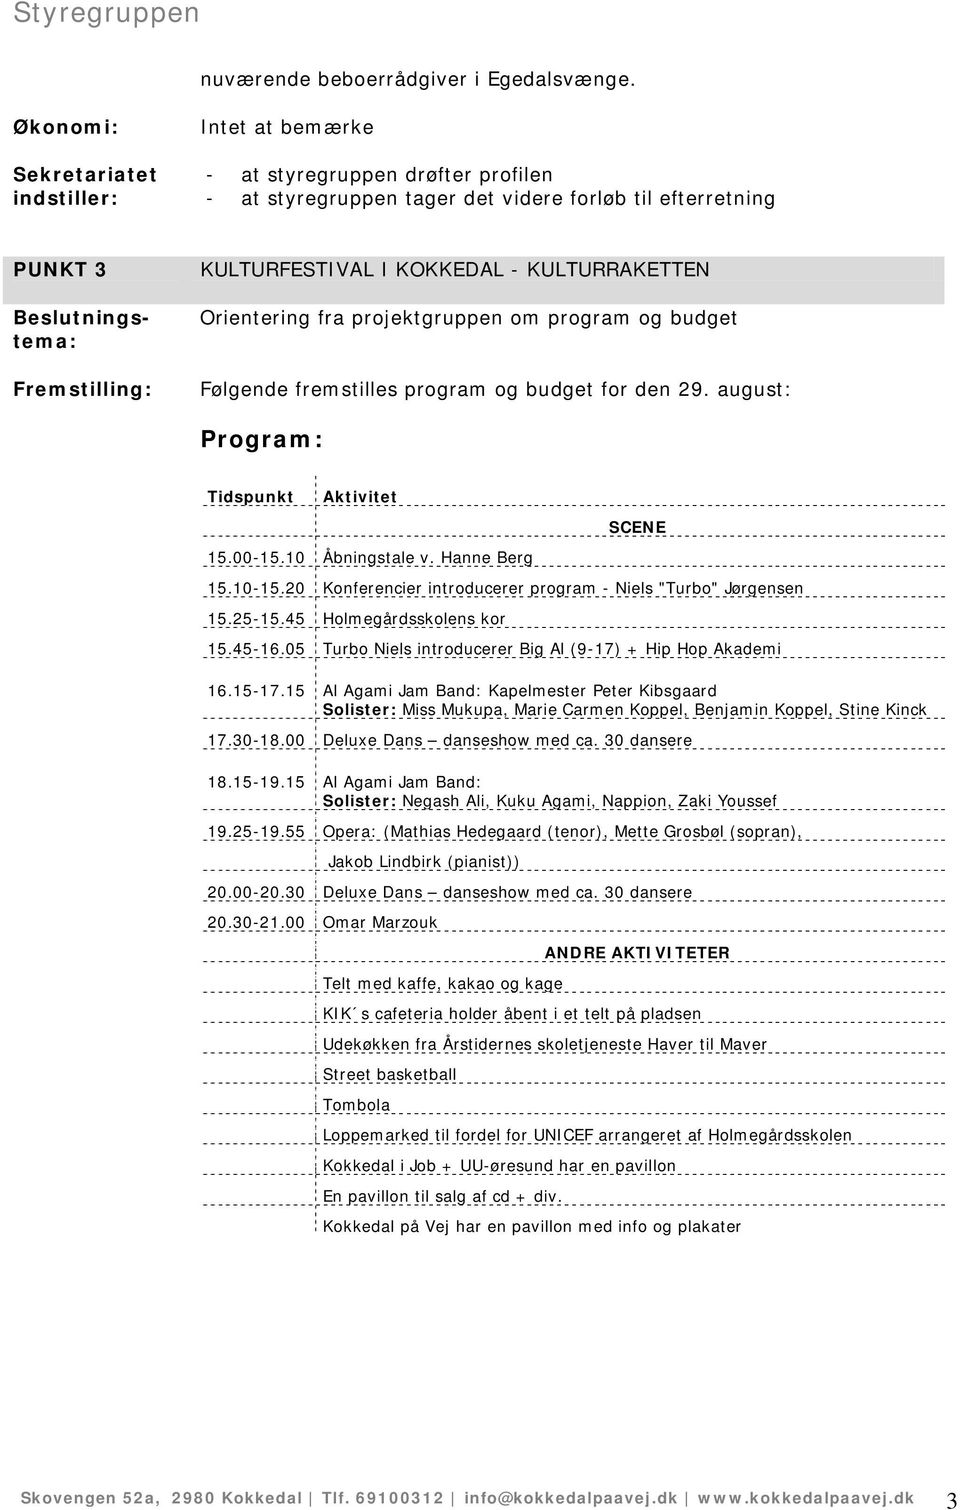 Følgende fremstilles program og budget for den 29. august: Program: Tidspunkt Aktivitet 15.00-15.10 Åbningstale v. Hanne Berg SCENE 15.10-15.